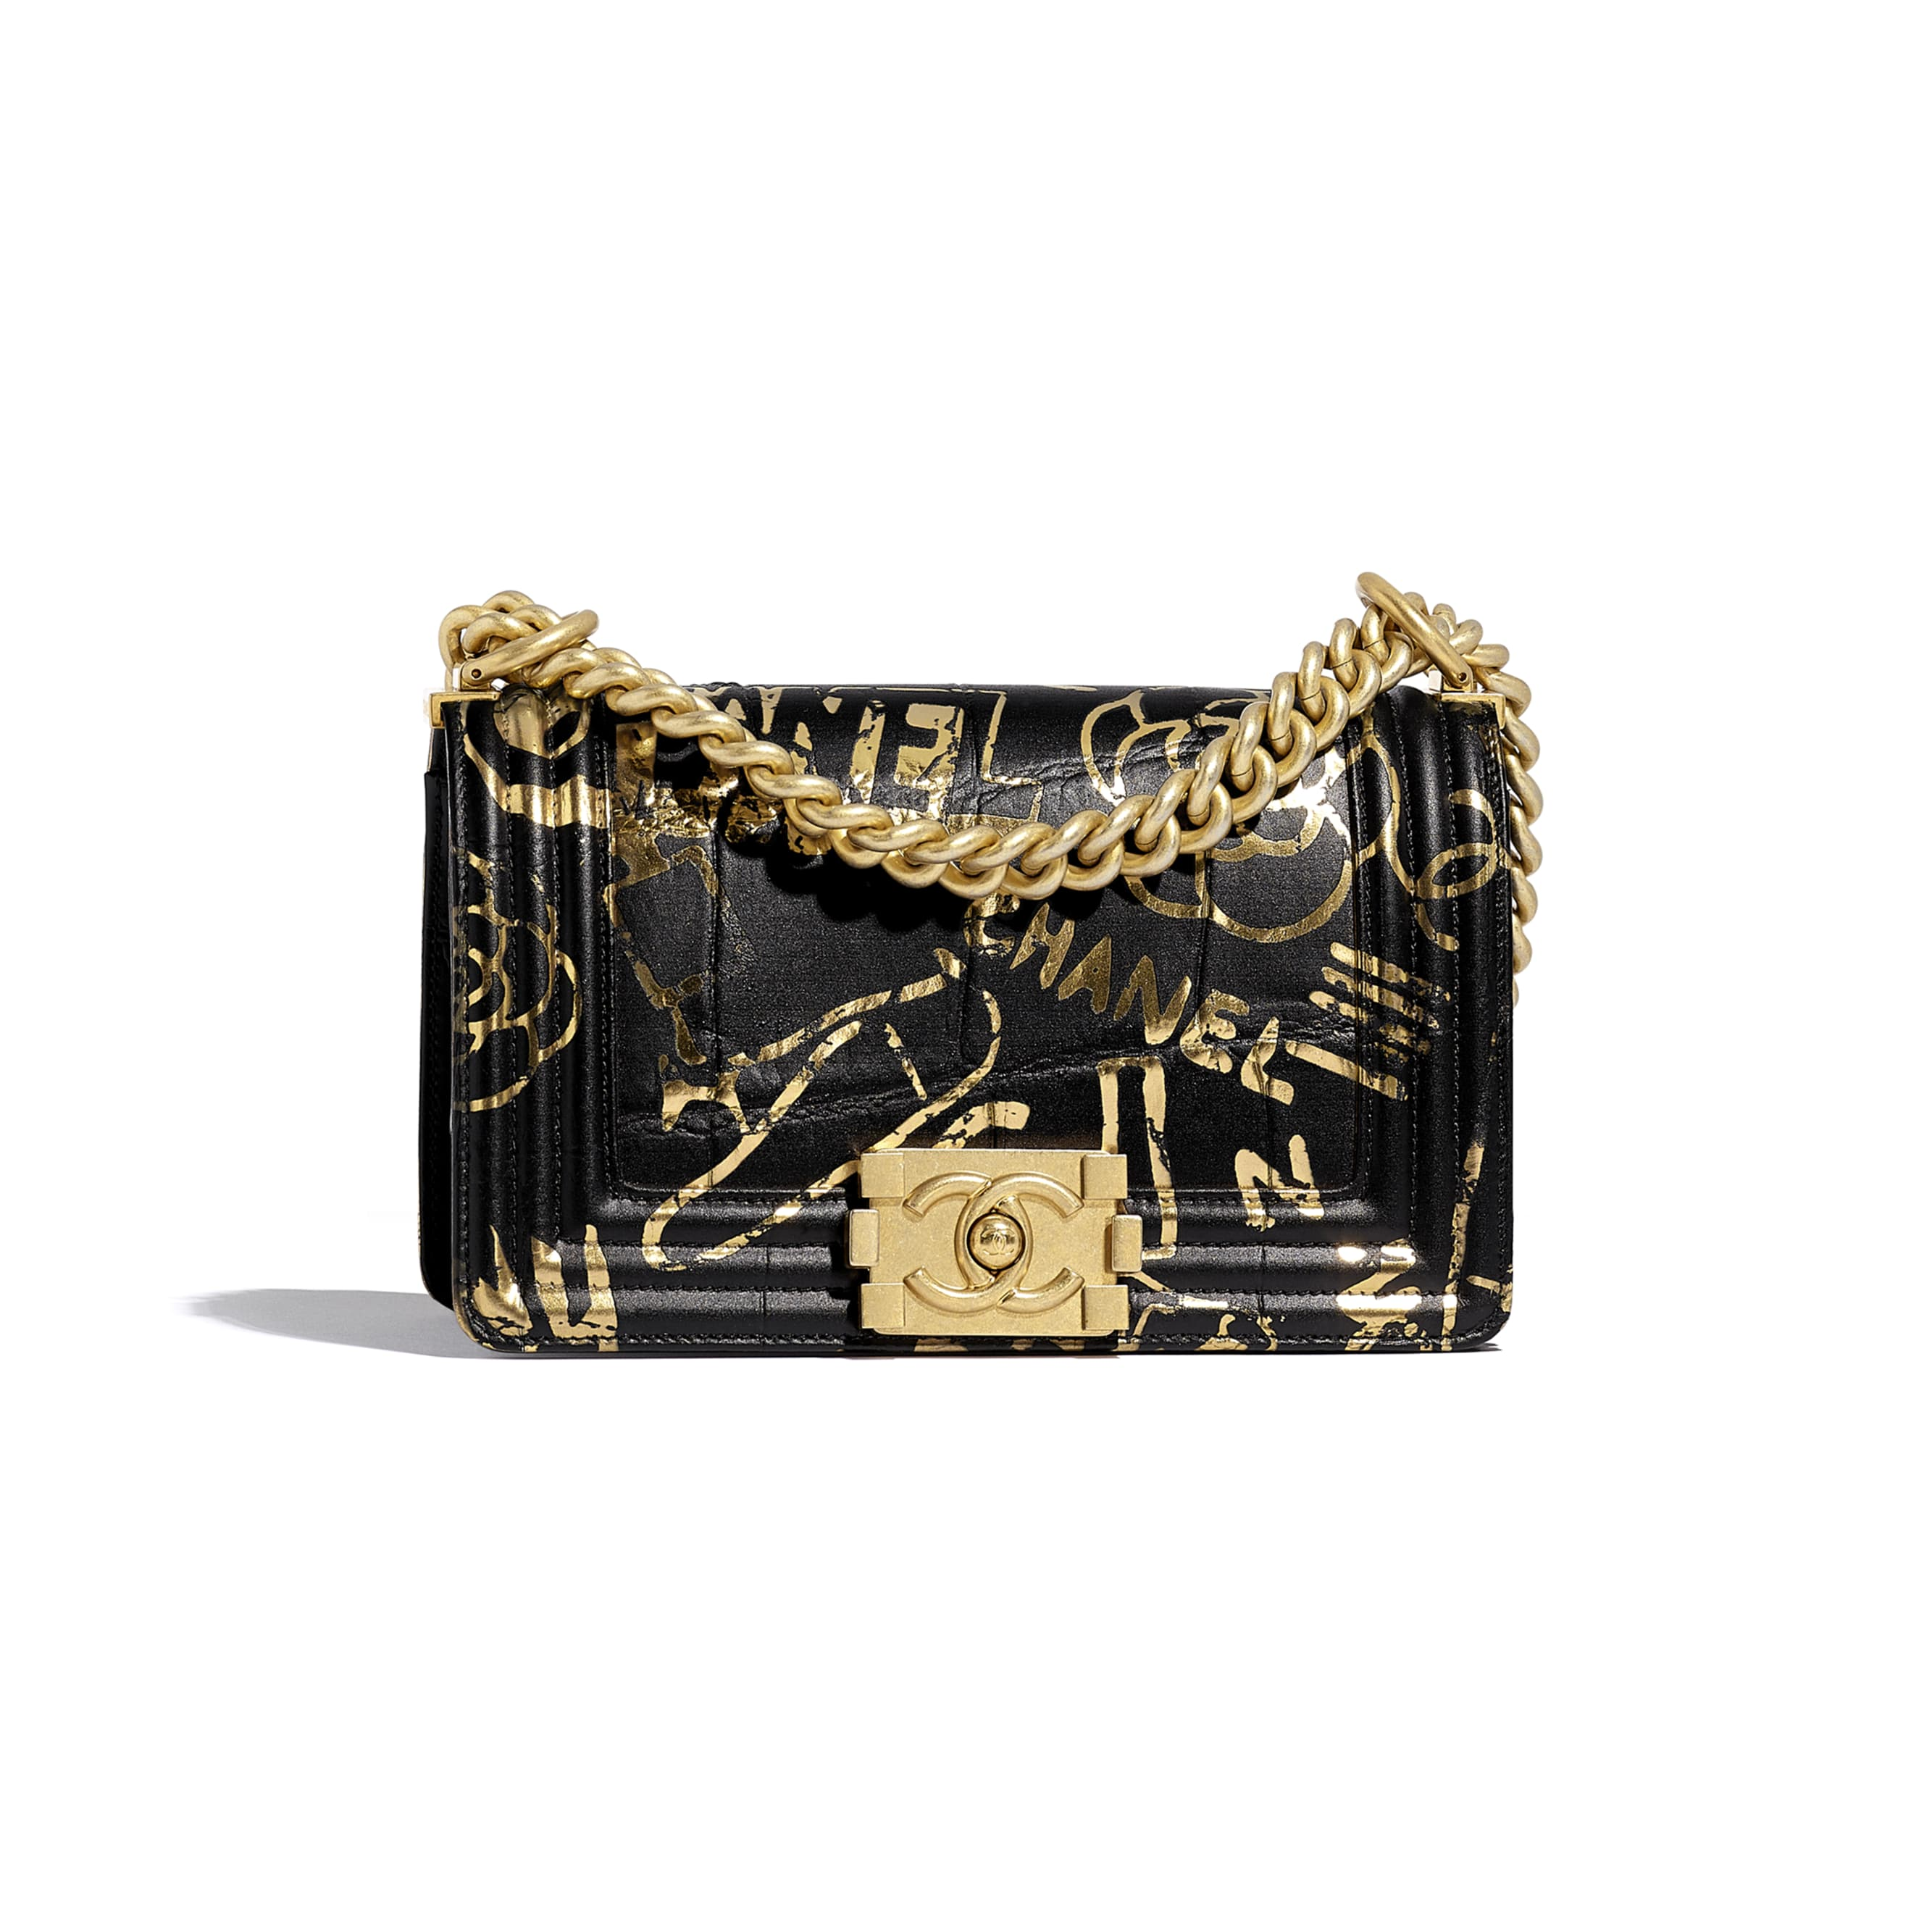 Small BOY CHANEL Handbag - Black & Gold - Crocodile Embossed Printed Leather & Gold-Tone Metal - Default view - see standard sized version